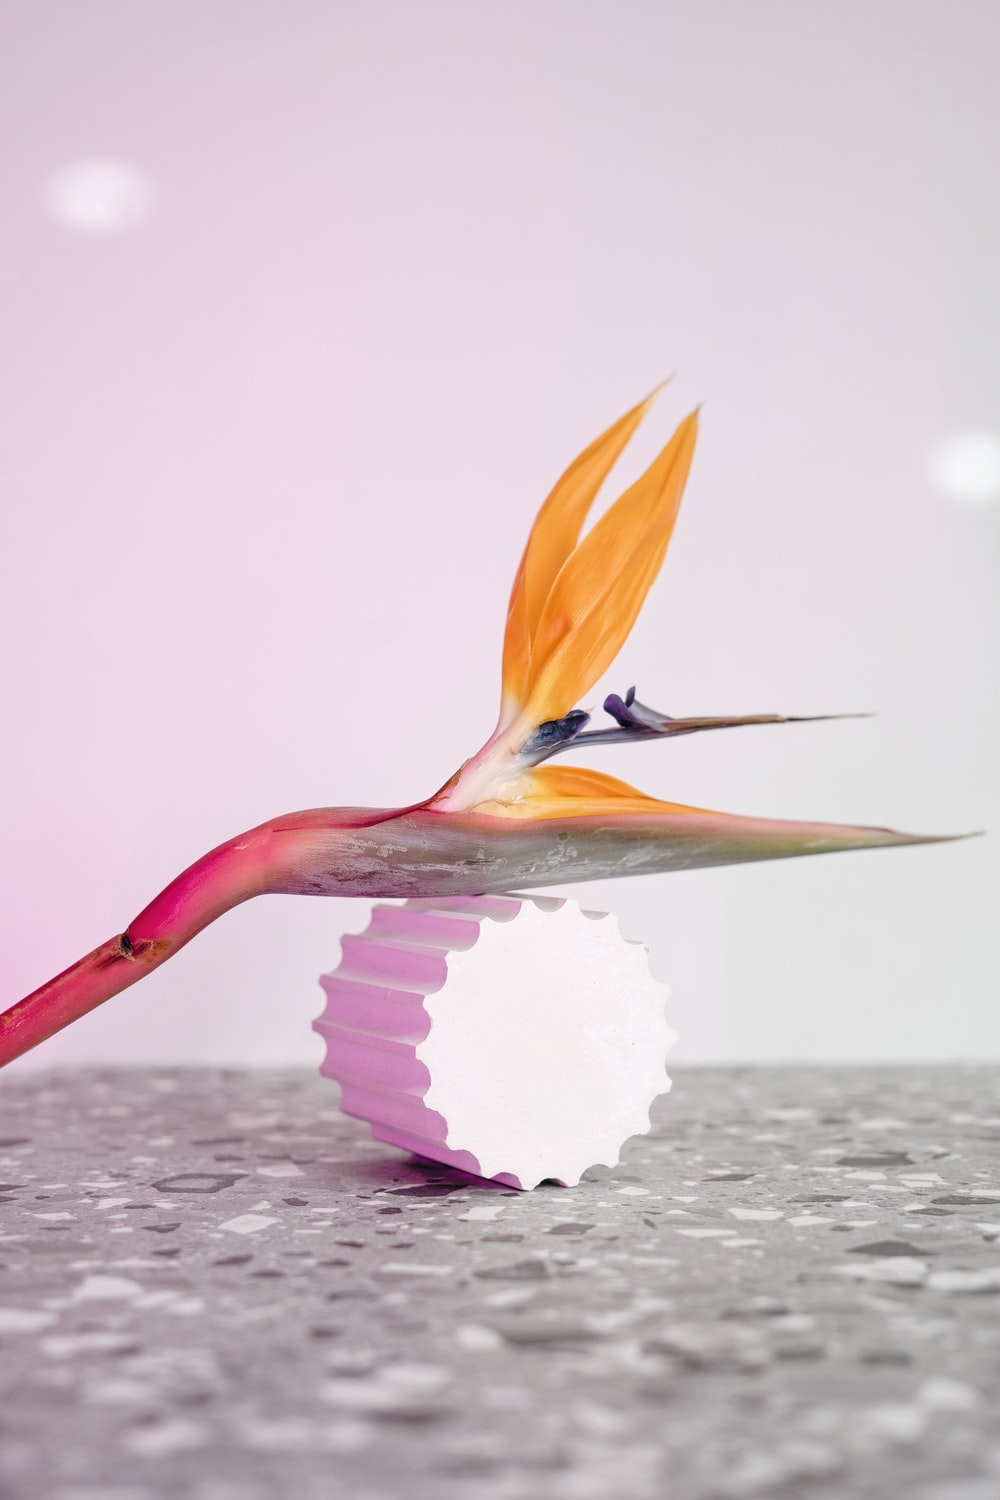 white and brown bird on pink and white textile